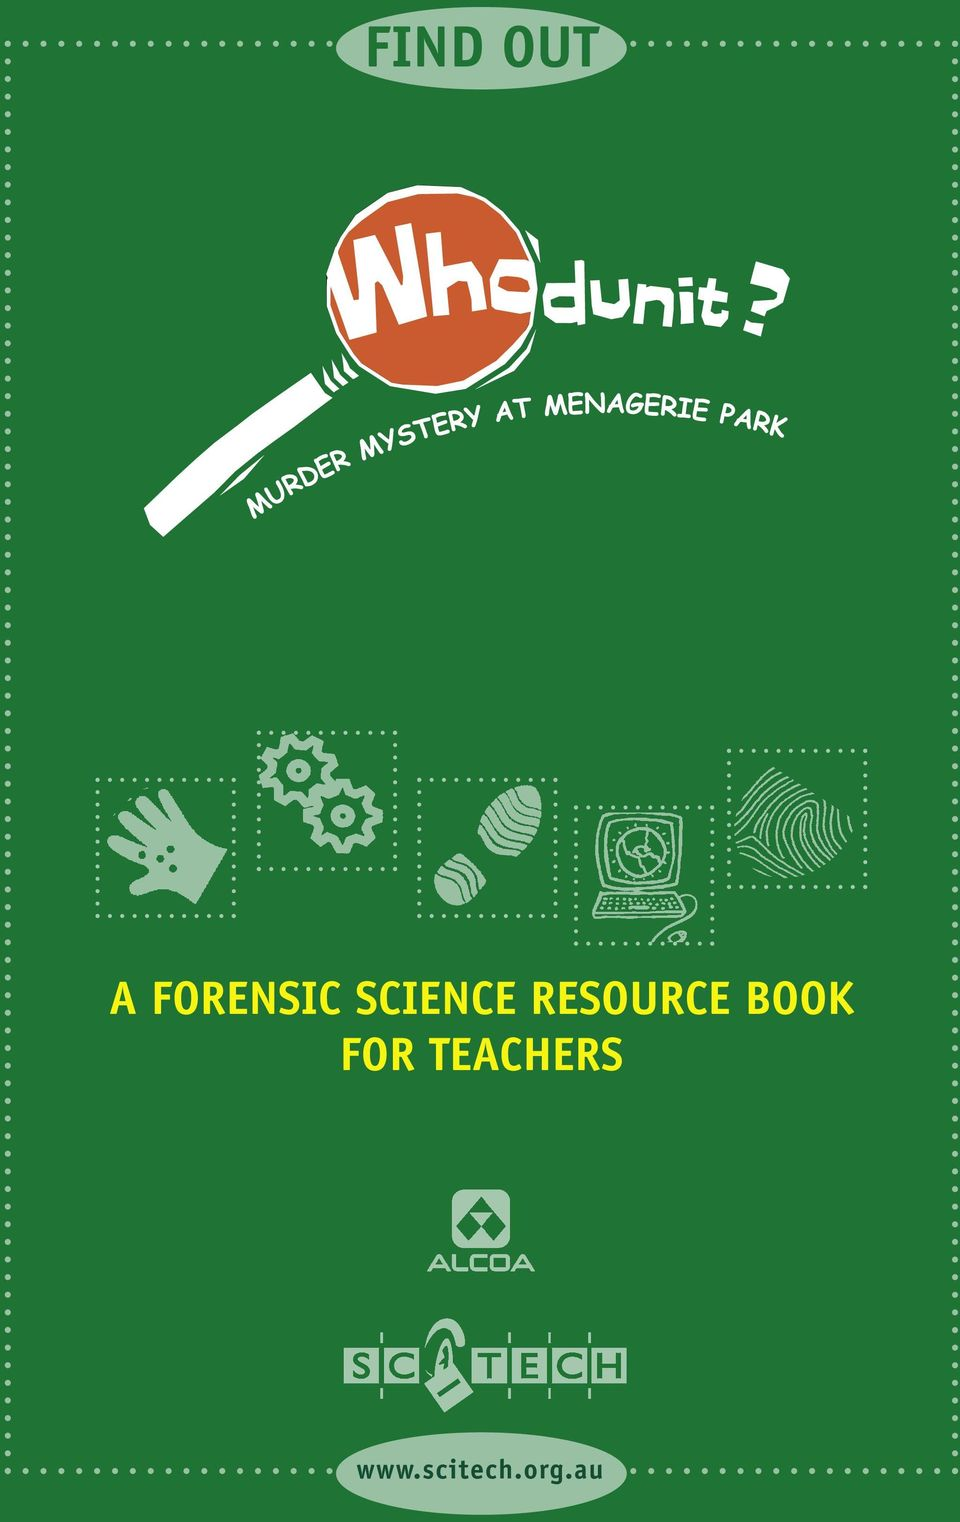 RESOURCE BOOK FOR